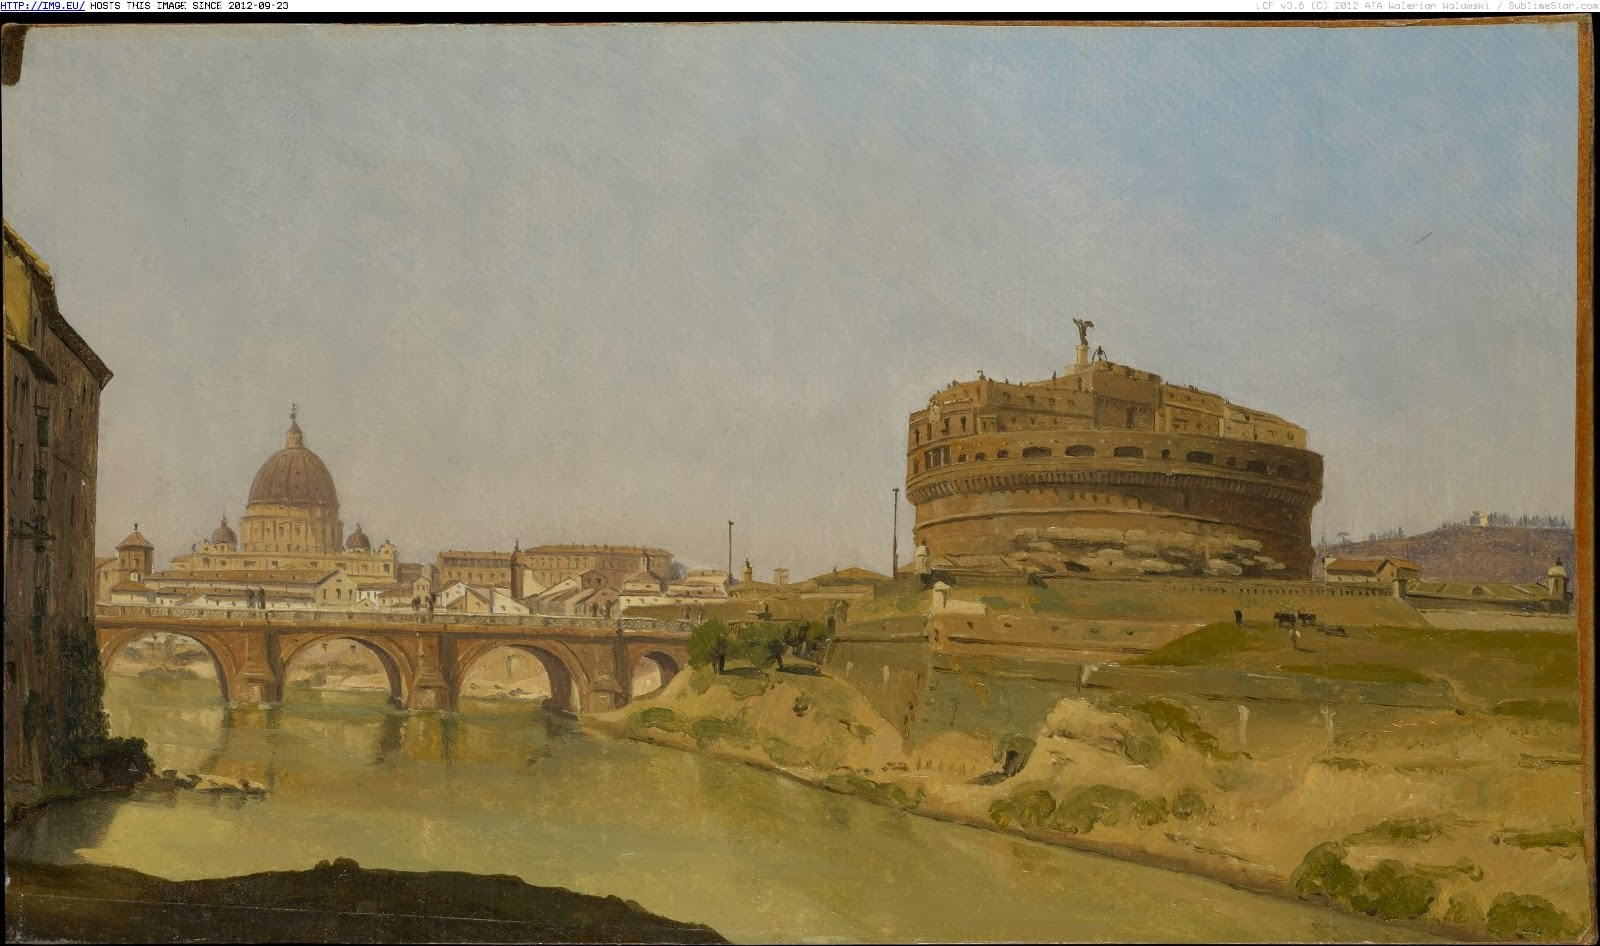 5 gustaf-söderberg-rome-with-st-peter-s-and-the-castel-sant-angelo-1821.jpg